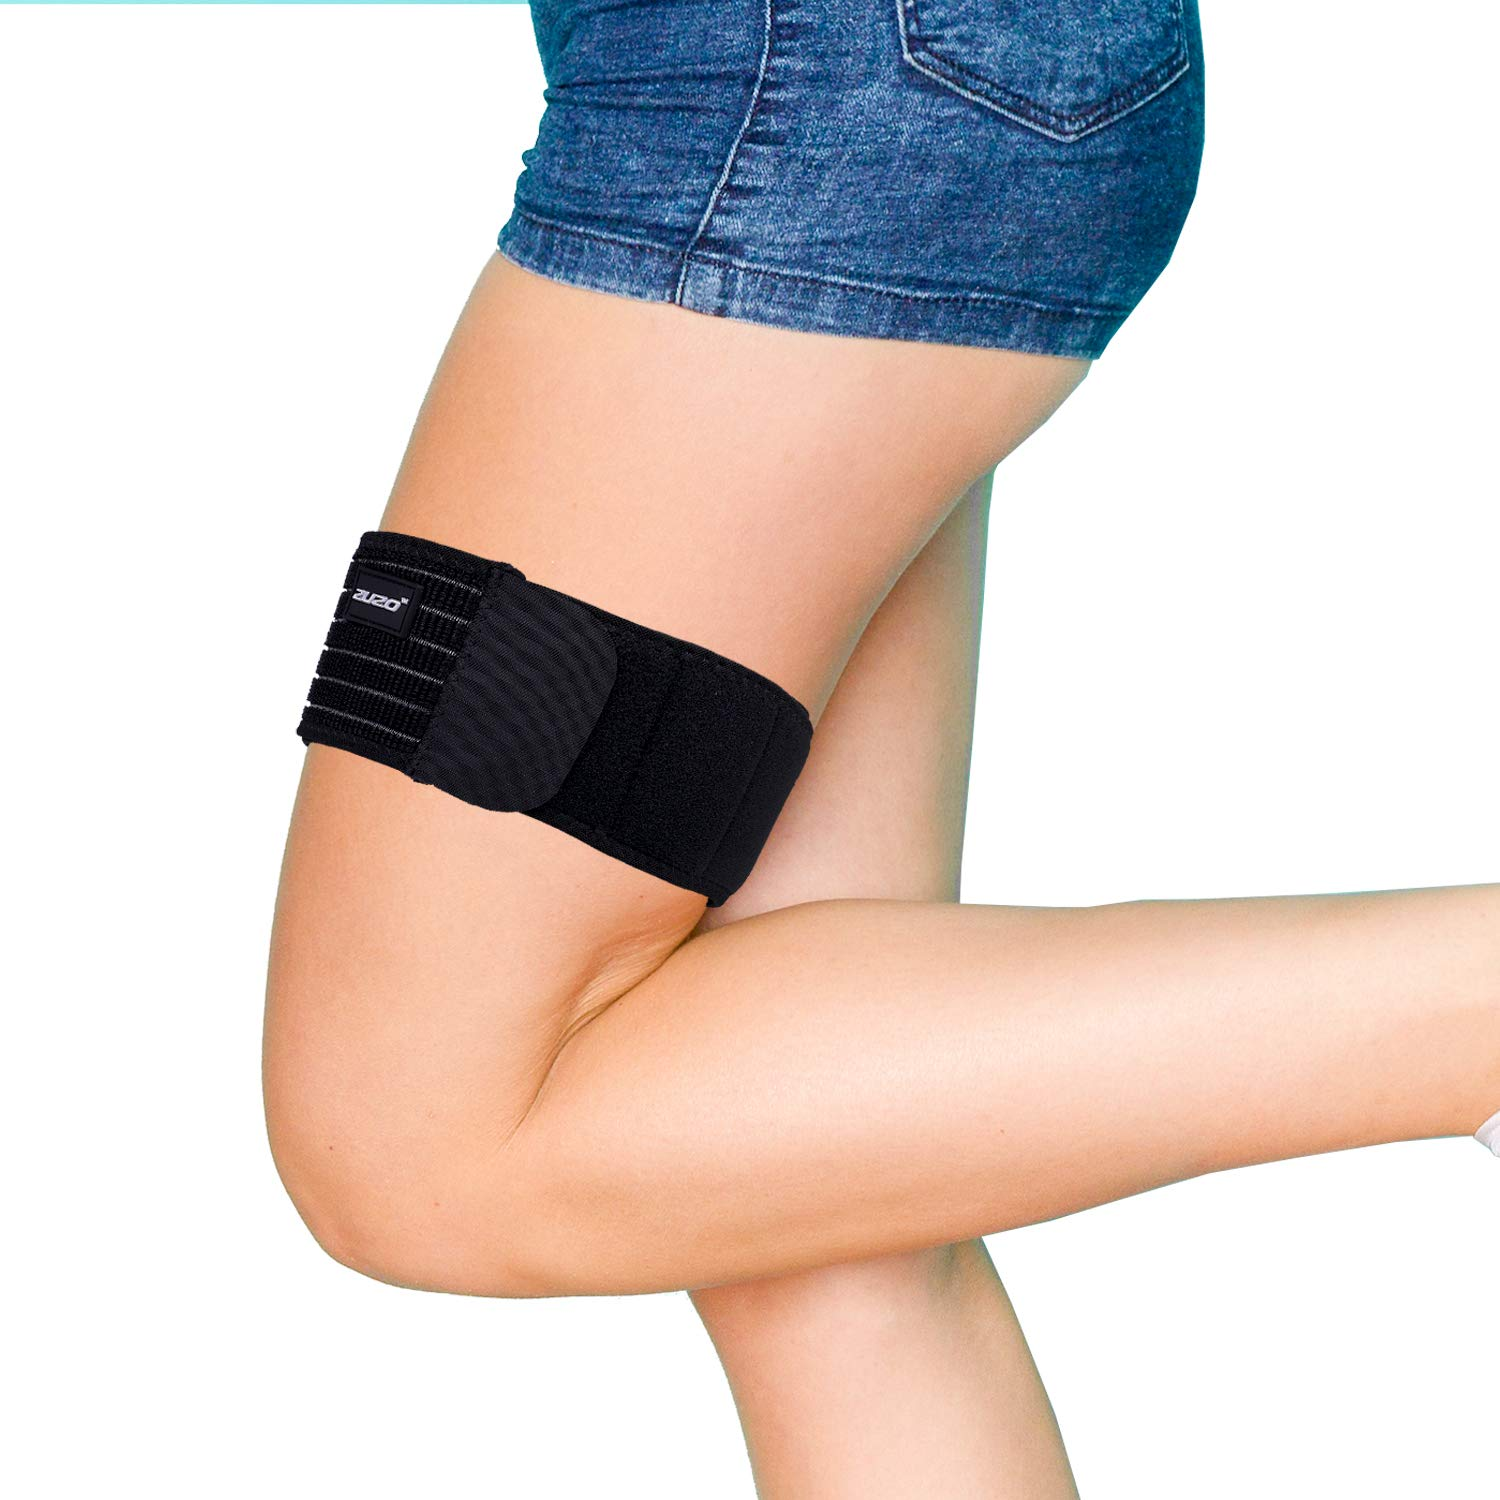 2U2O Thigh Brace-Adjustable Compression IT Band Upper Leg Wraps for Knee Pain, Hip, Thigh & ITB Syndrome Support -Athletic Stabilizer for Men, Women by 2U2O